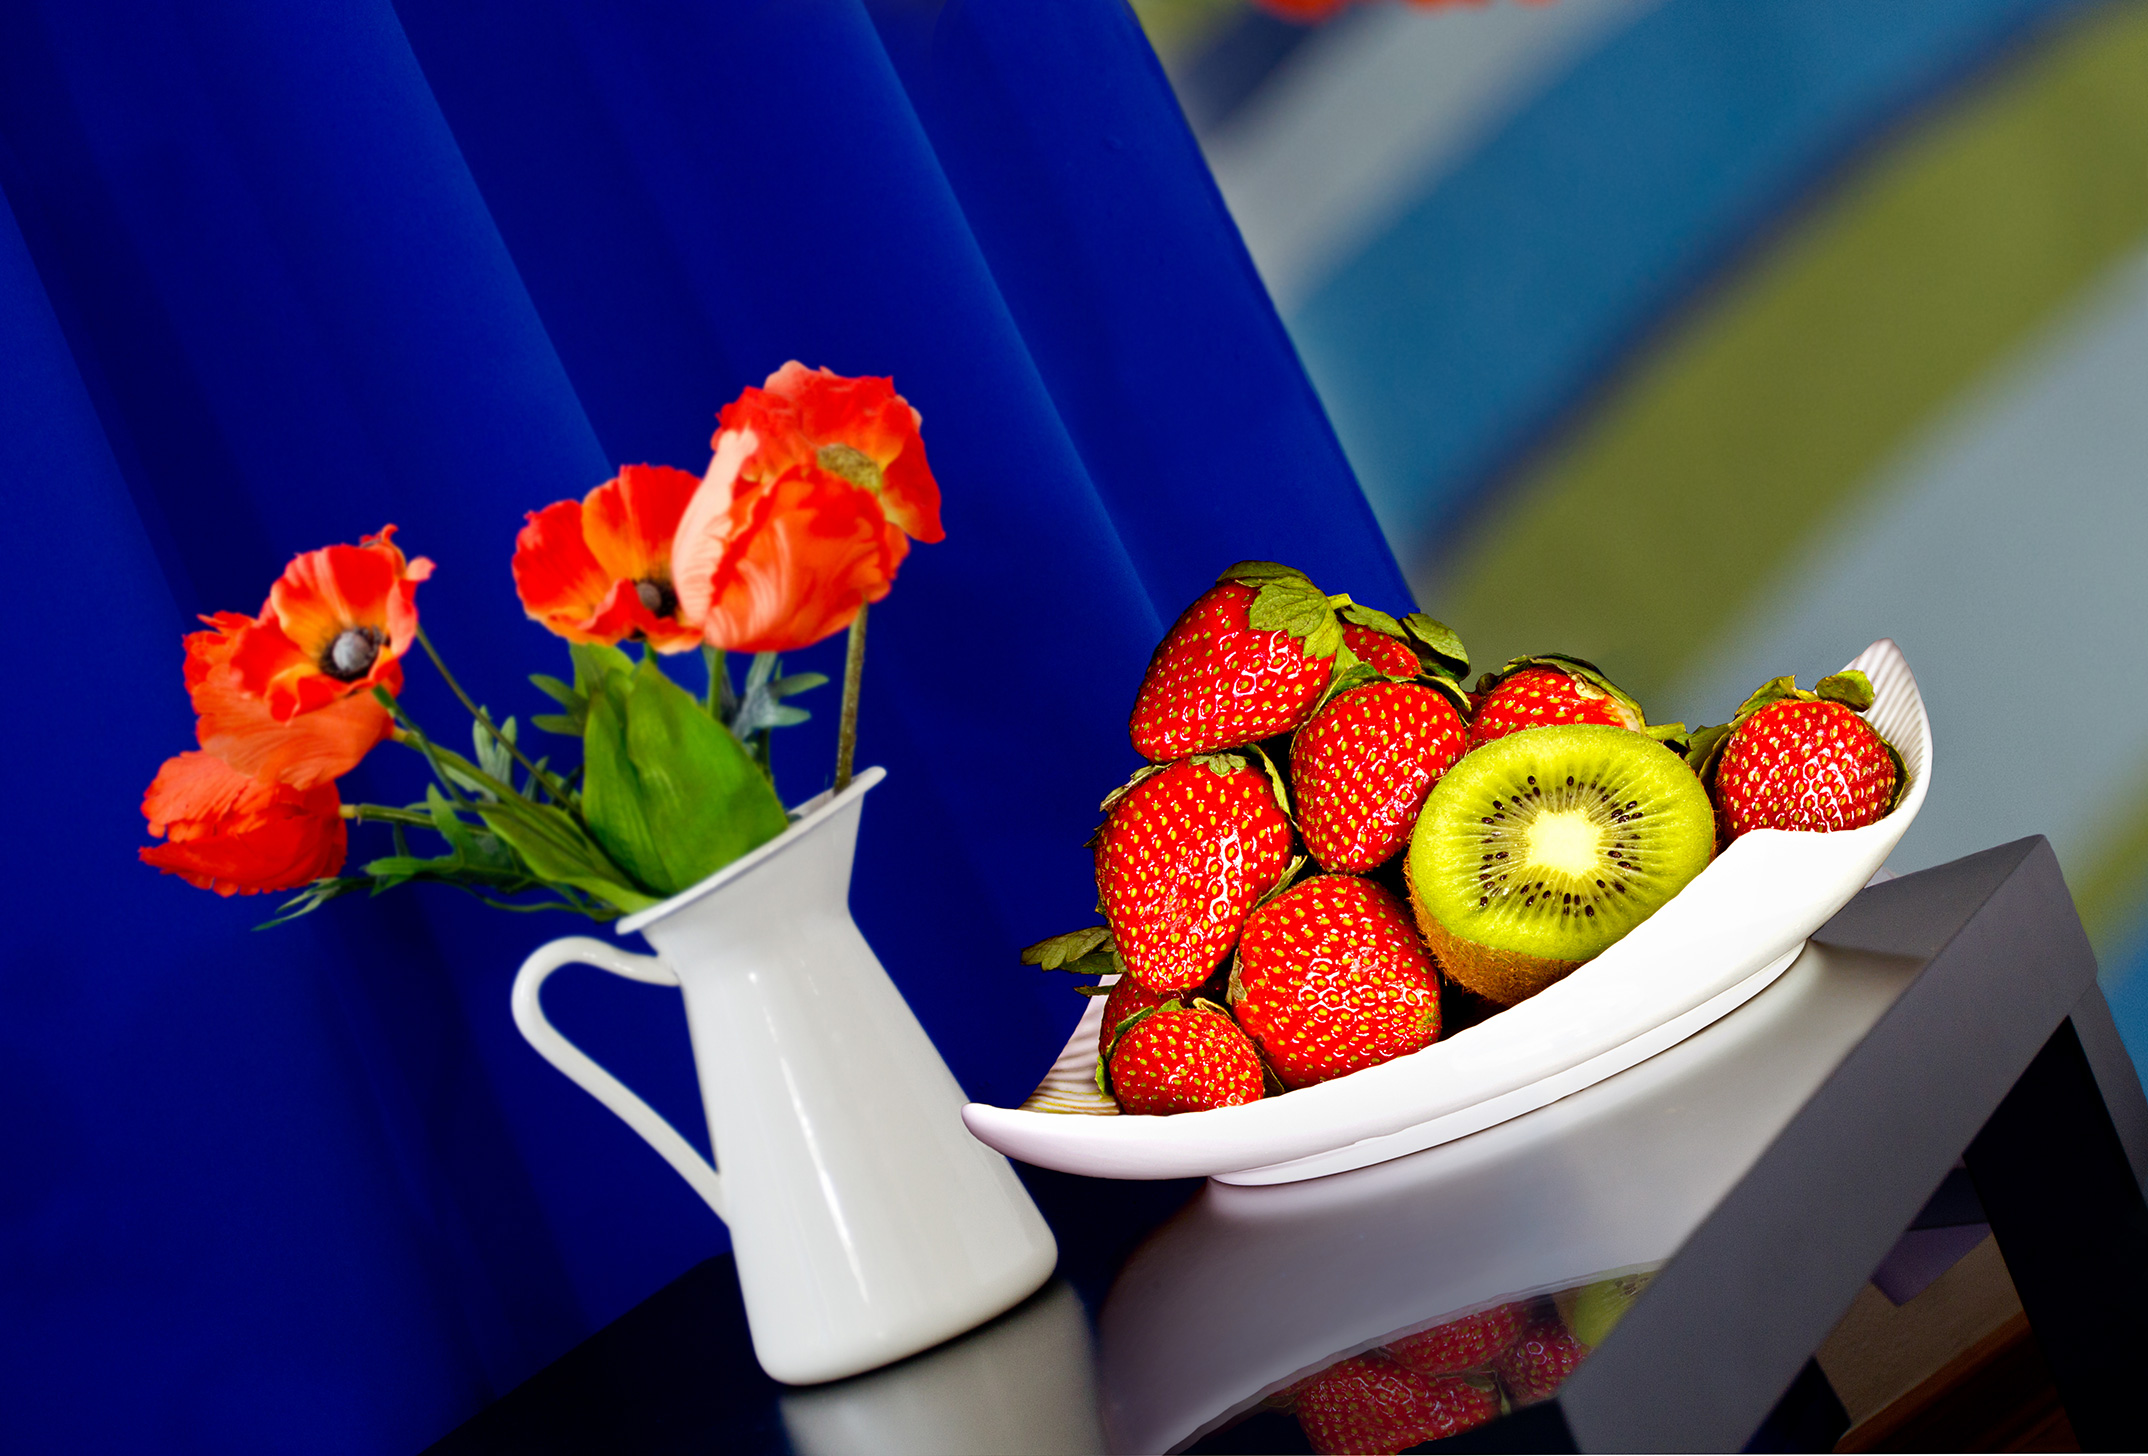 Charvatova-10 Superior One BedRoom Apartments whith terrace  - fruits and flowers